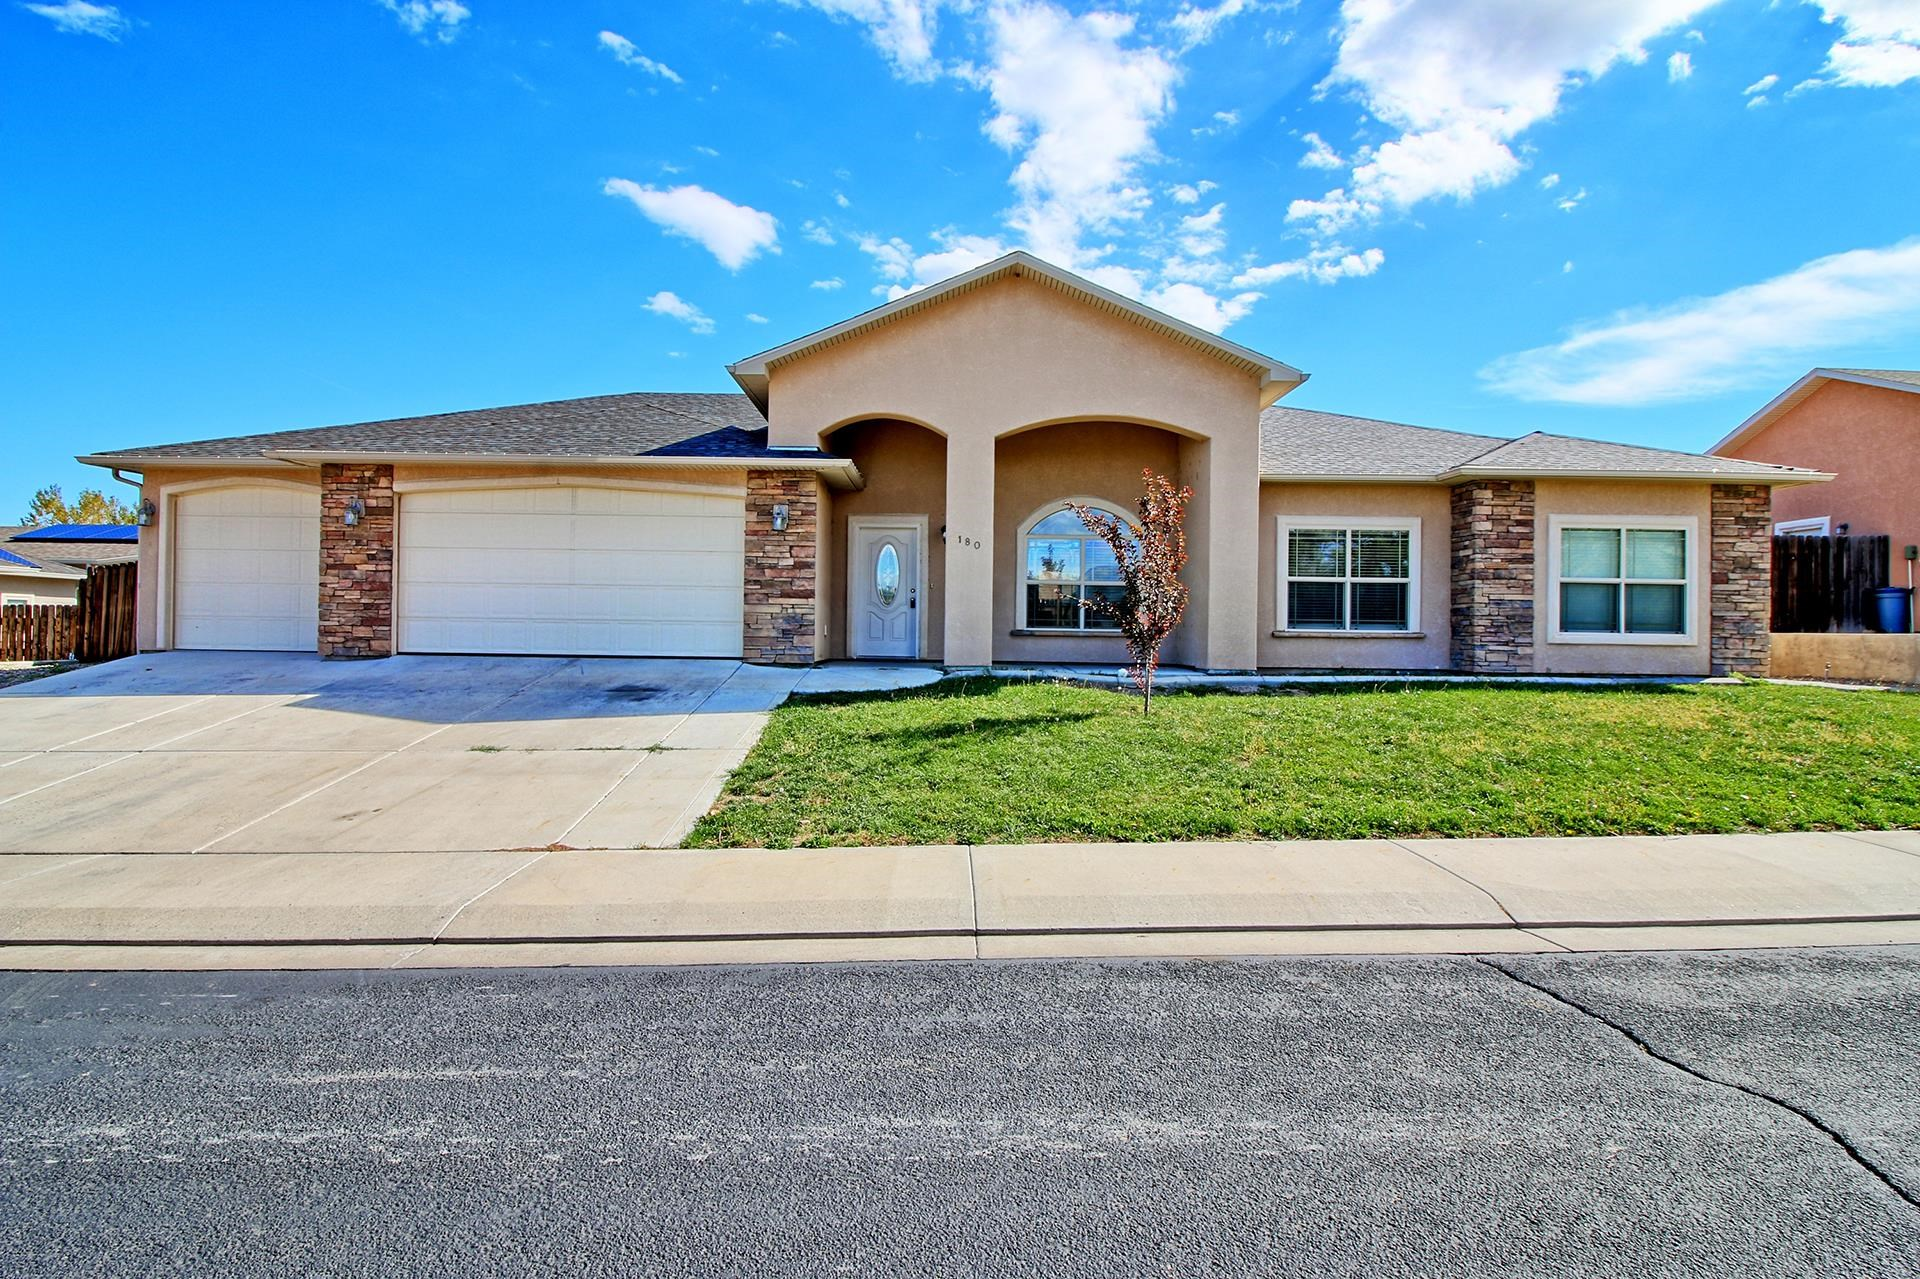 180 28 1/2 Road, Grand Junction, CO 81503